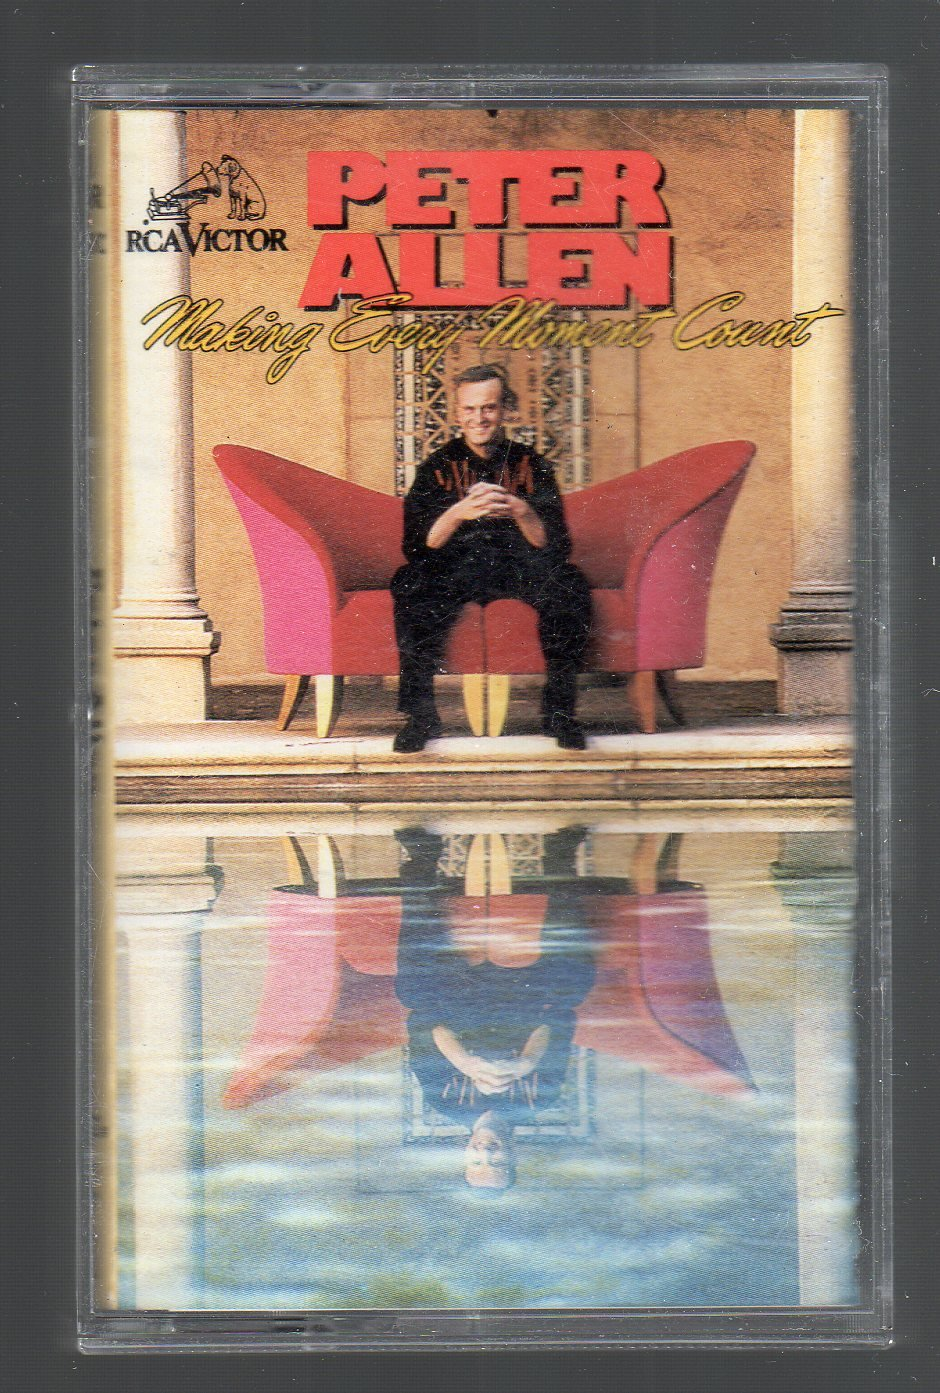 Peter Allen - Making Every Moment Count Cassette Tape